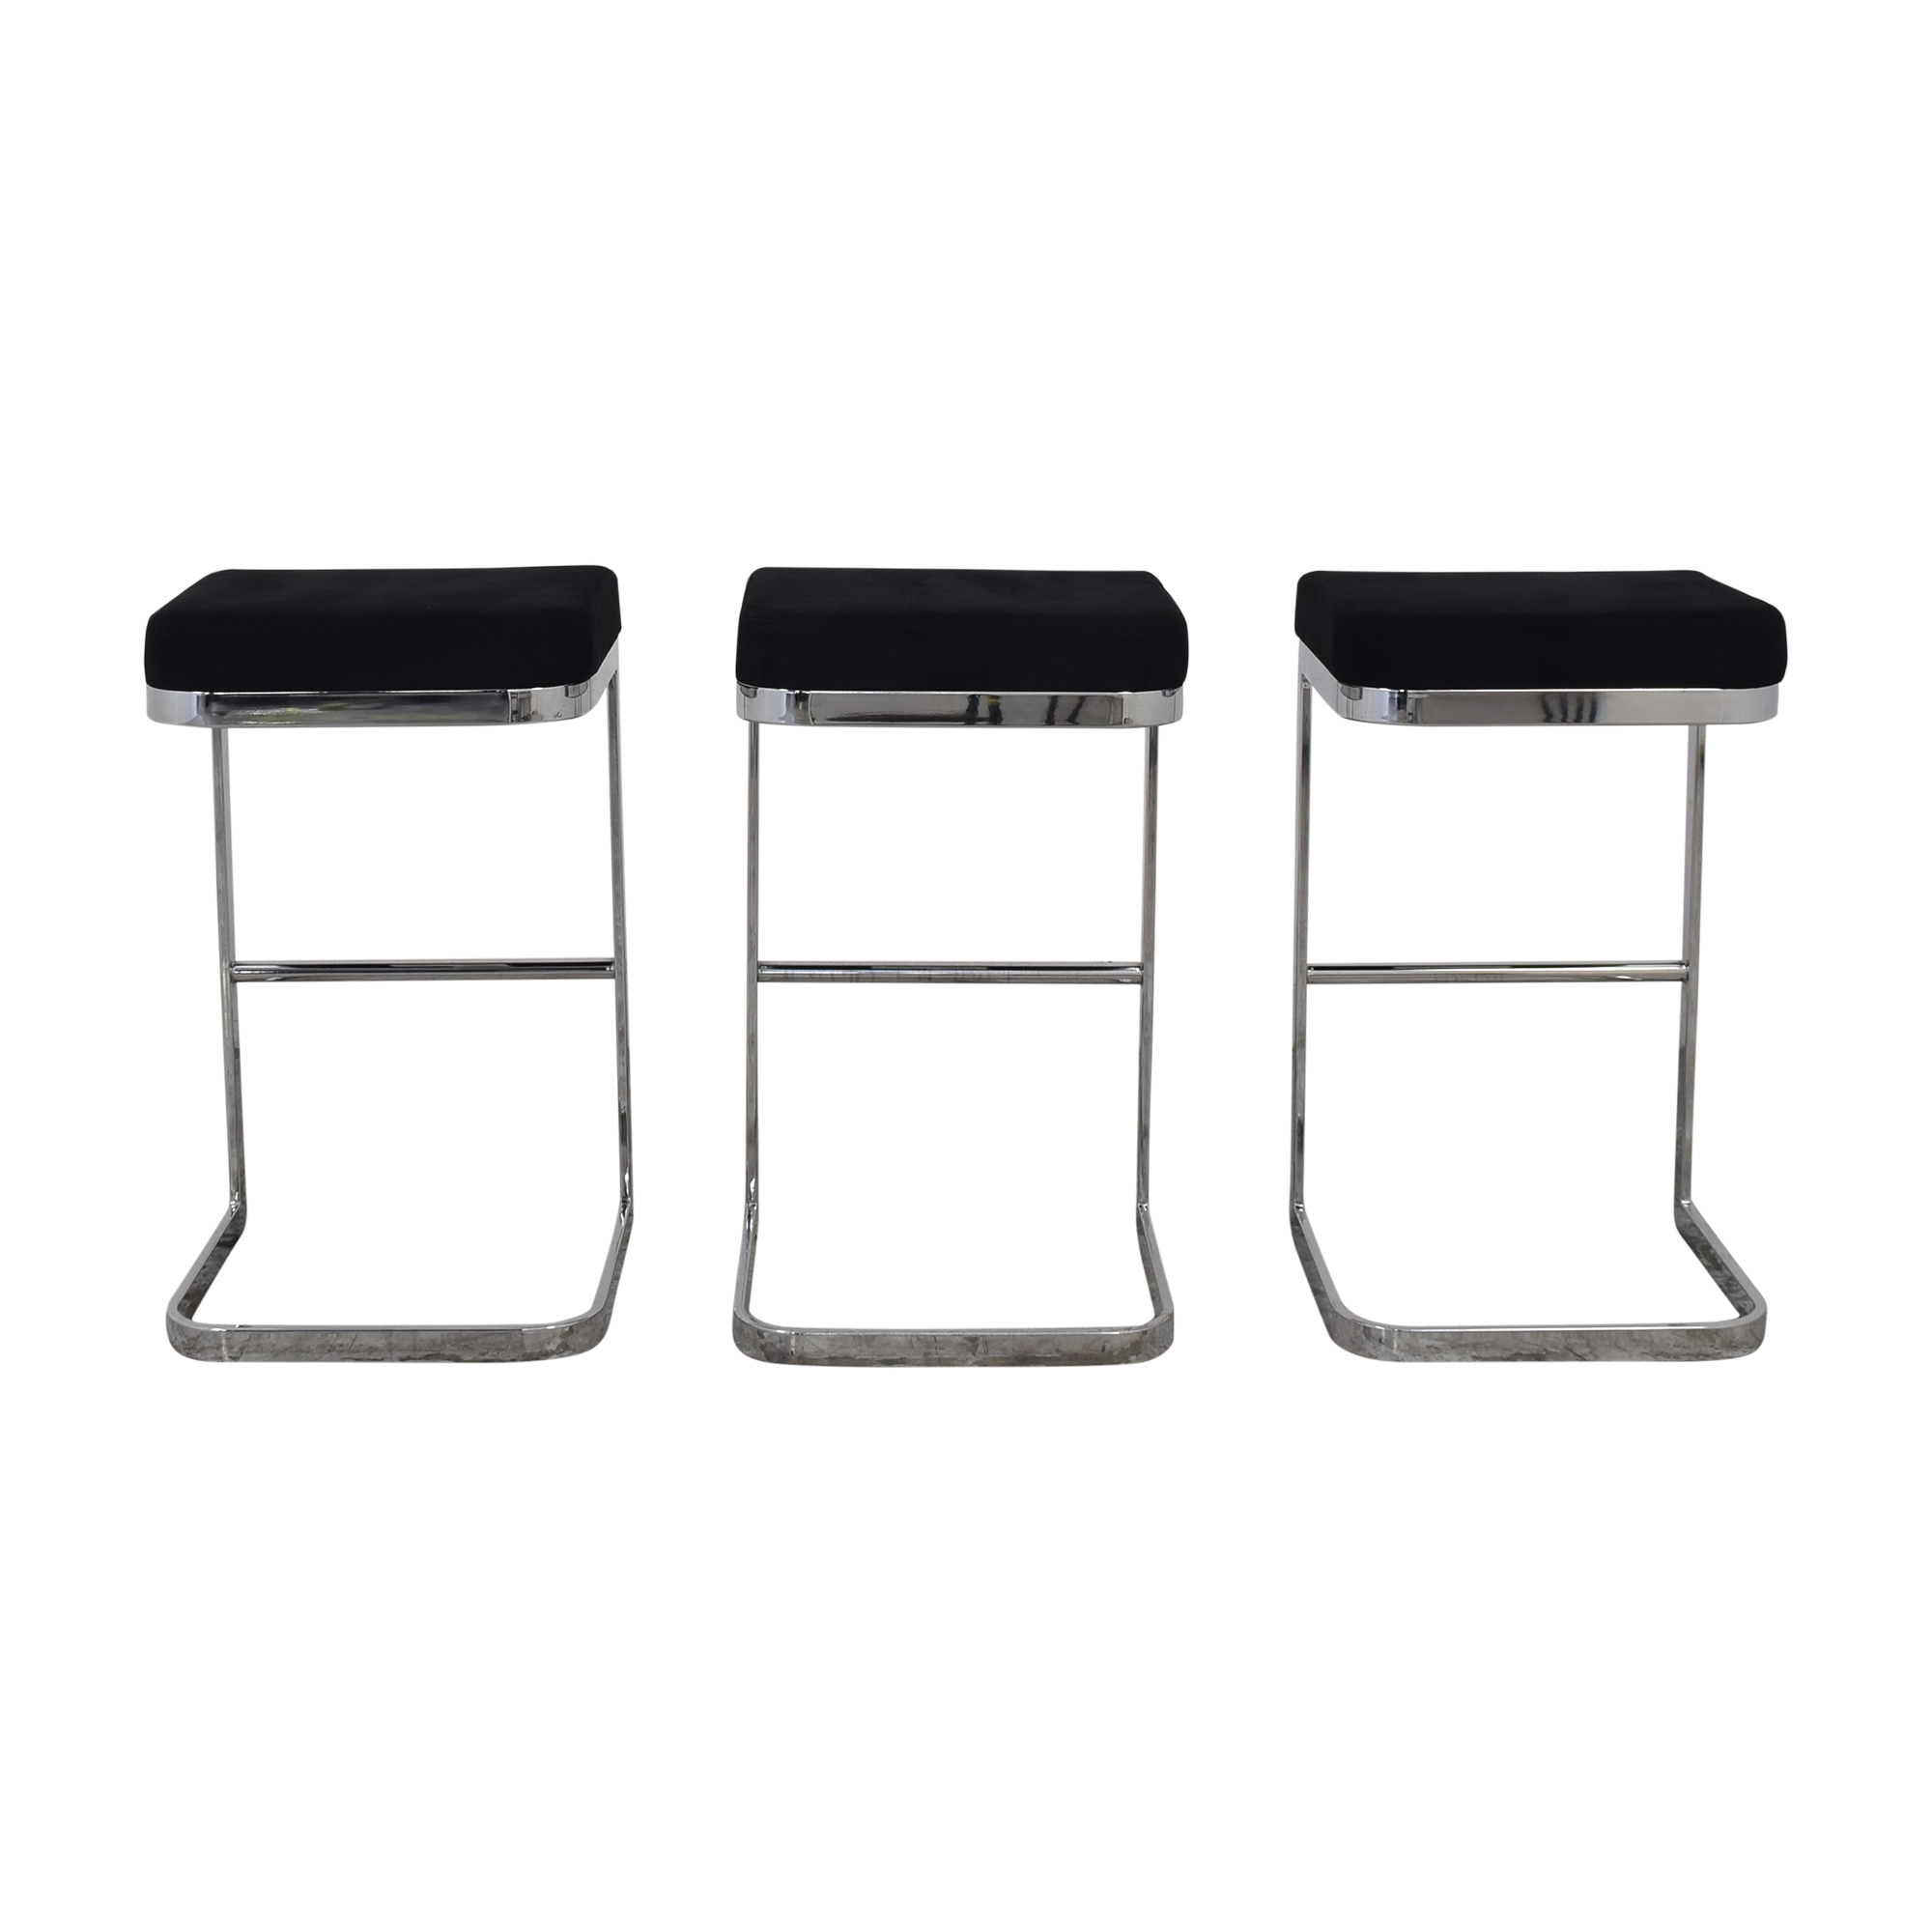 Crate & Barrel CB2 Mack Bar Stools on sale